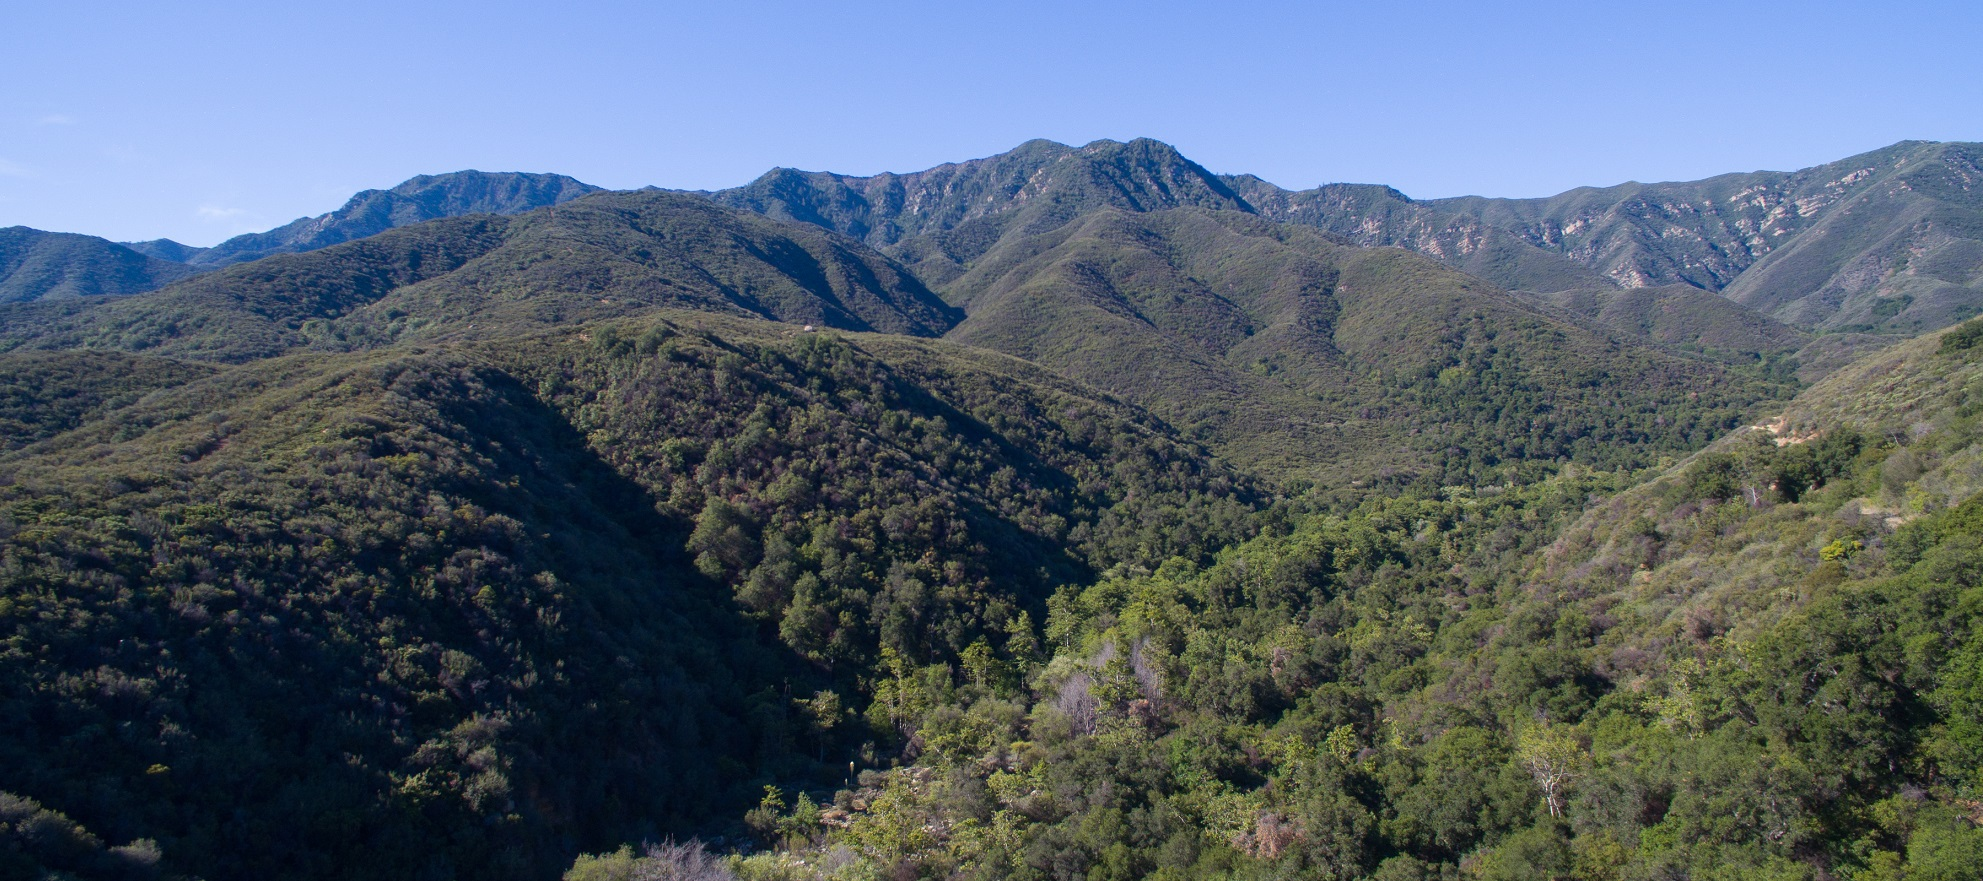 Luxury listing: Countryside living in Los Padres National Forest